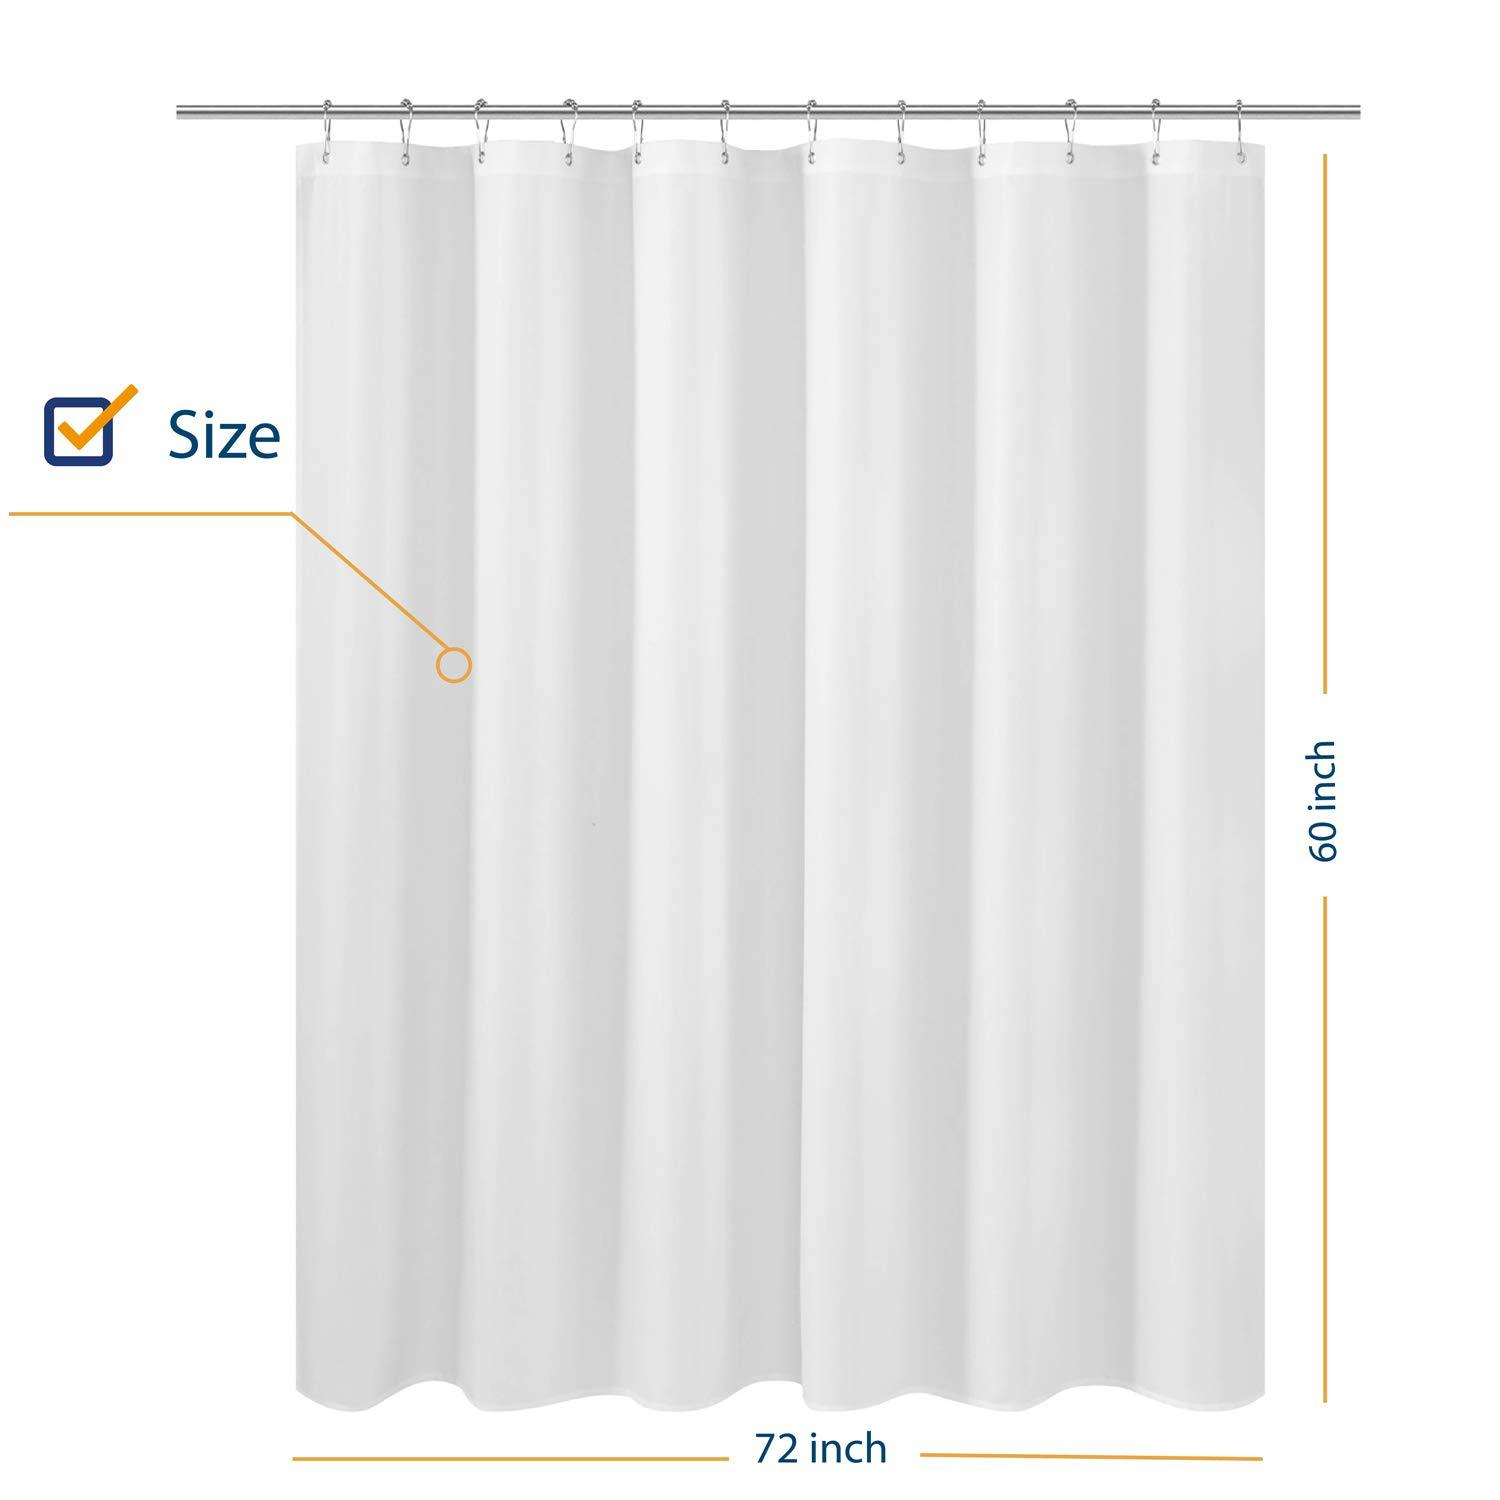 n y home fabric shower curtain liner 60 inches long hotel quality machine washable white shorter bathroom curtains with grommets 72x60 72 x60